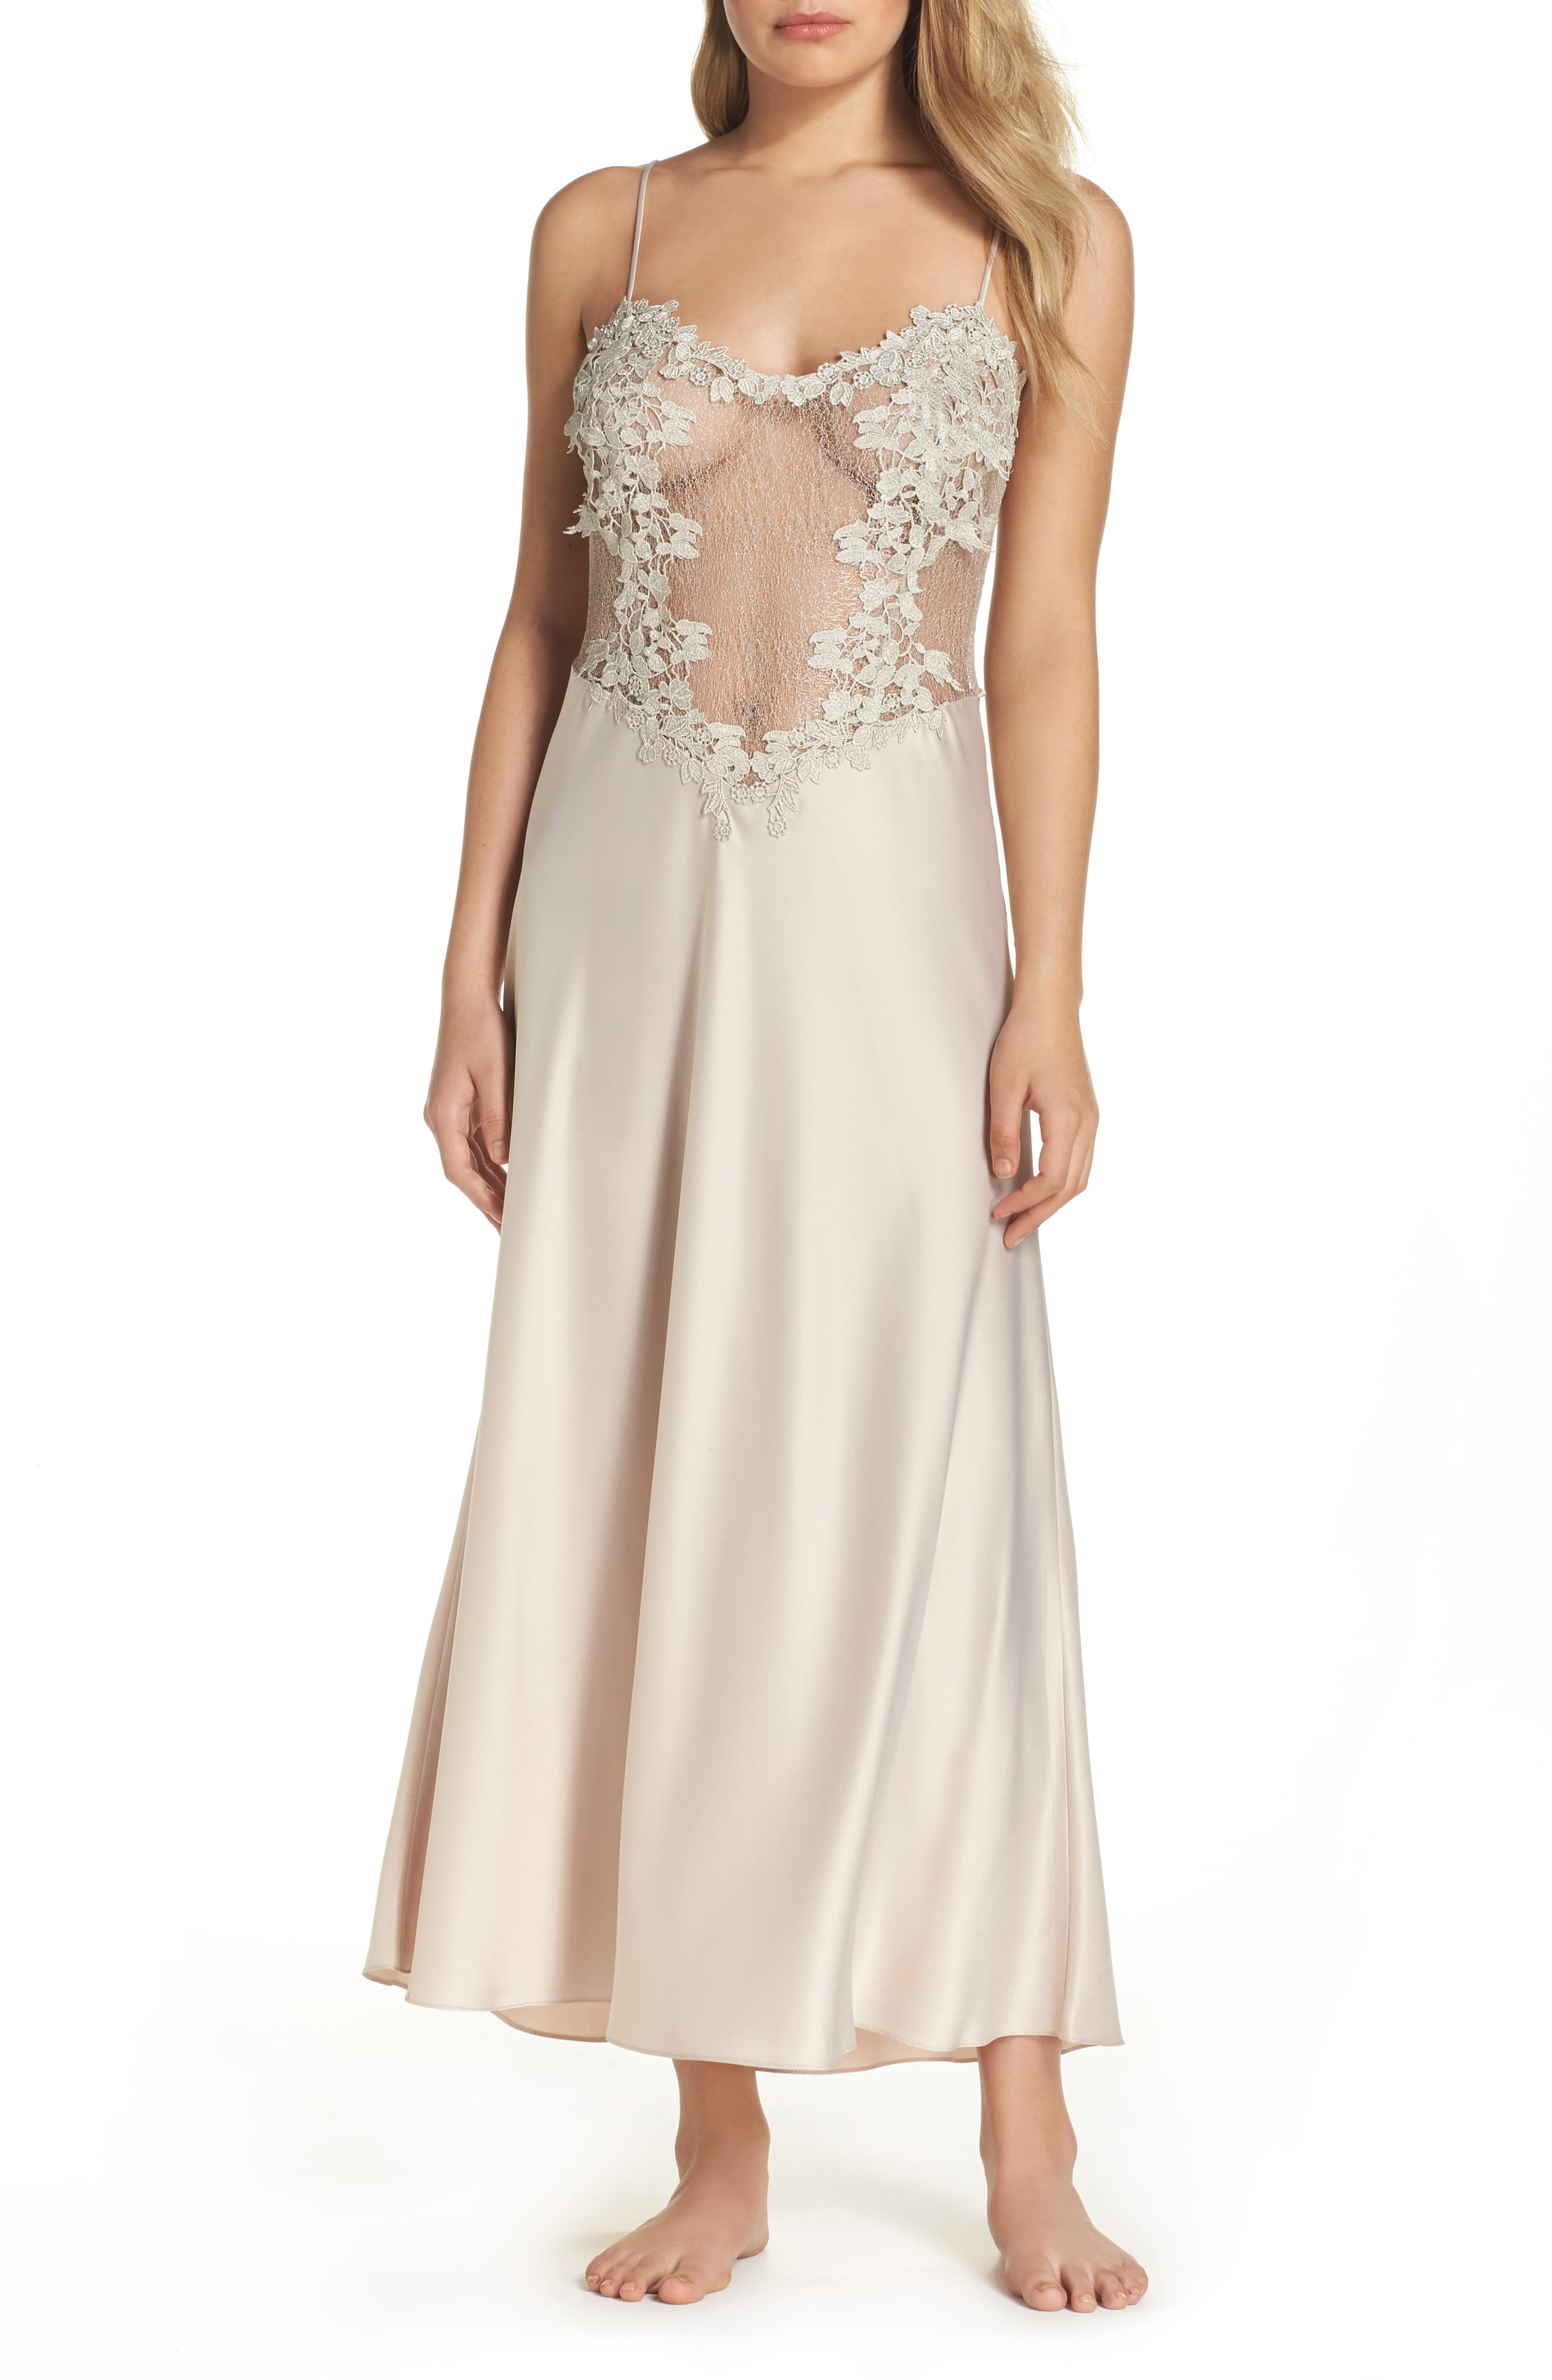 FLORA NIKROOZ, Showstopper Nightgown, Alternate thumbnail 2, color, CHAMPAGNE